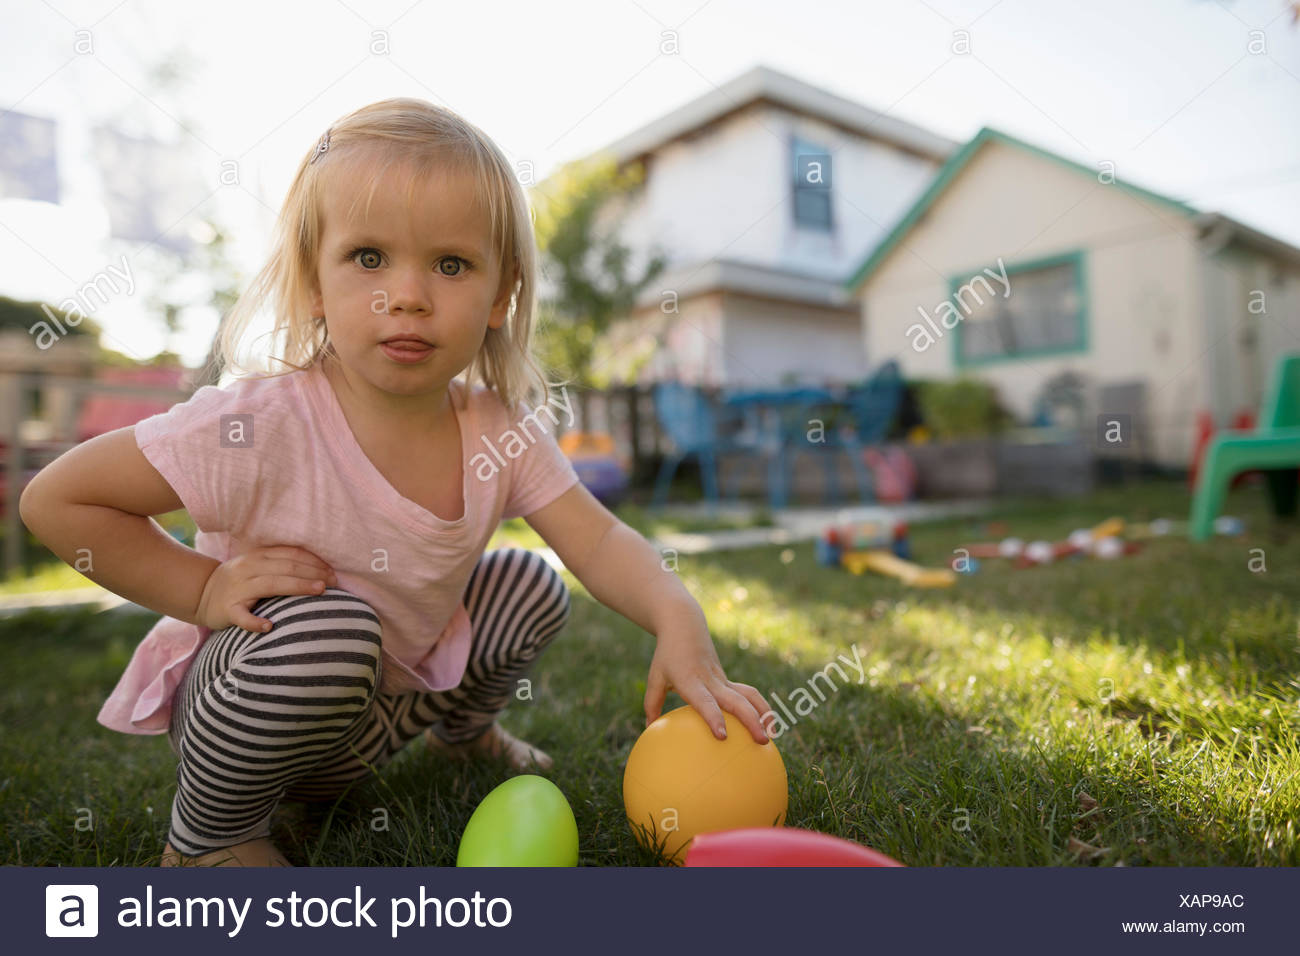 Curieux portrait blonde girl Playing with toys in backyard Photo Stock